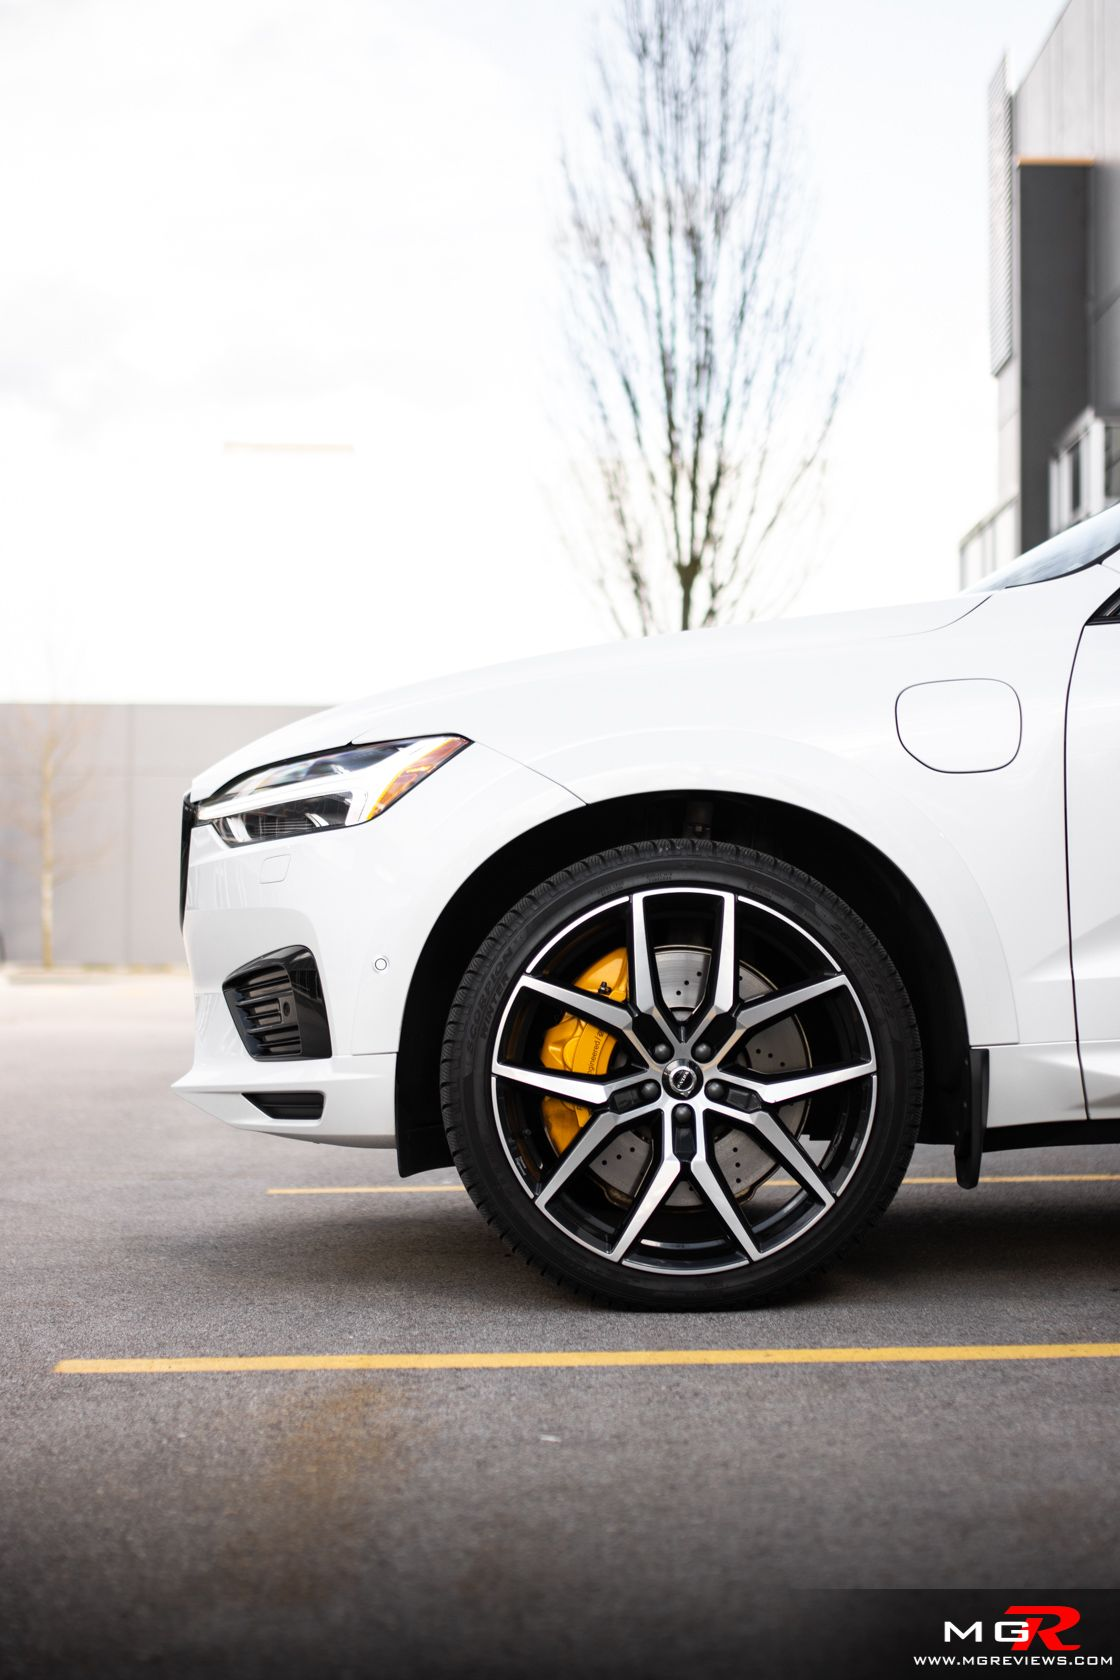 Review 2020 Volvo Xc60 T8 Polestar Engineered Mgreviews Com In 2020 Volvo Xc60 Volvo Pole Star